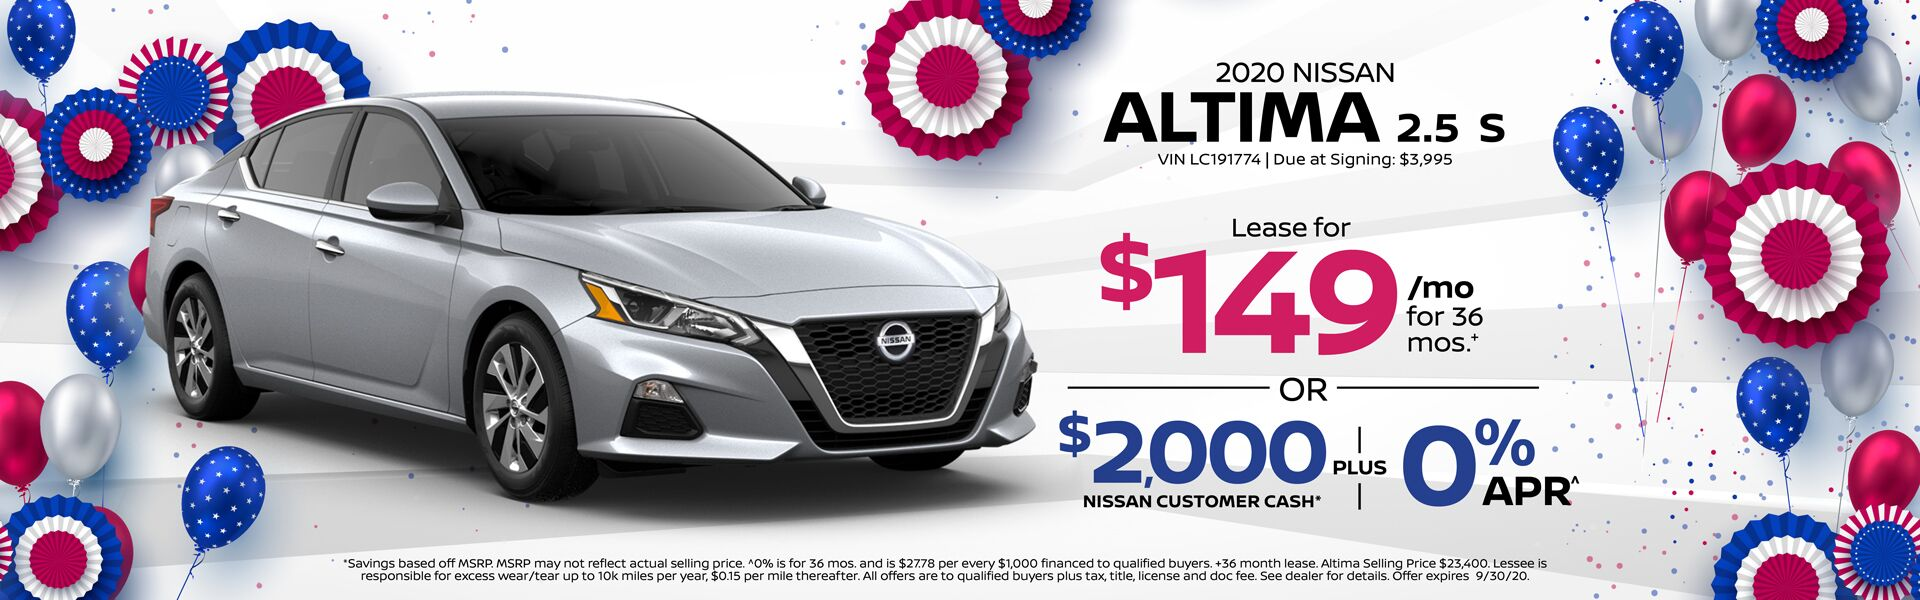 2020 Altima 2.5 S Lease for $149